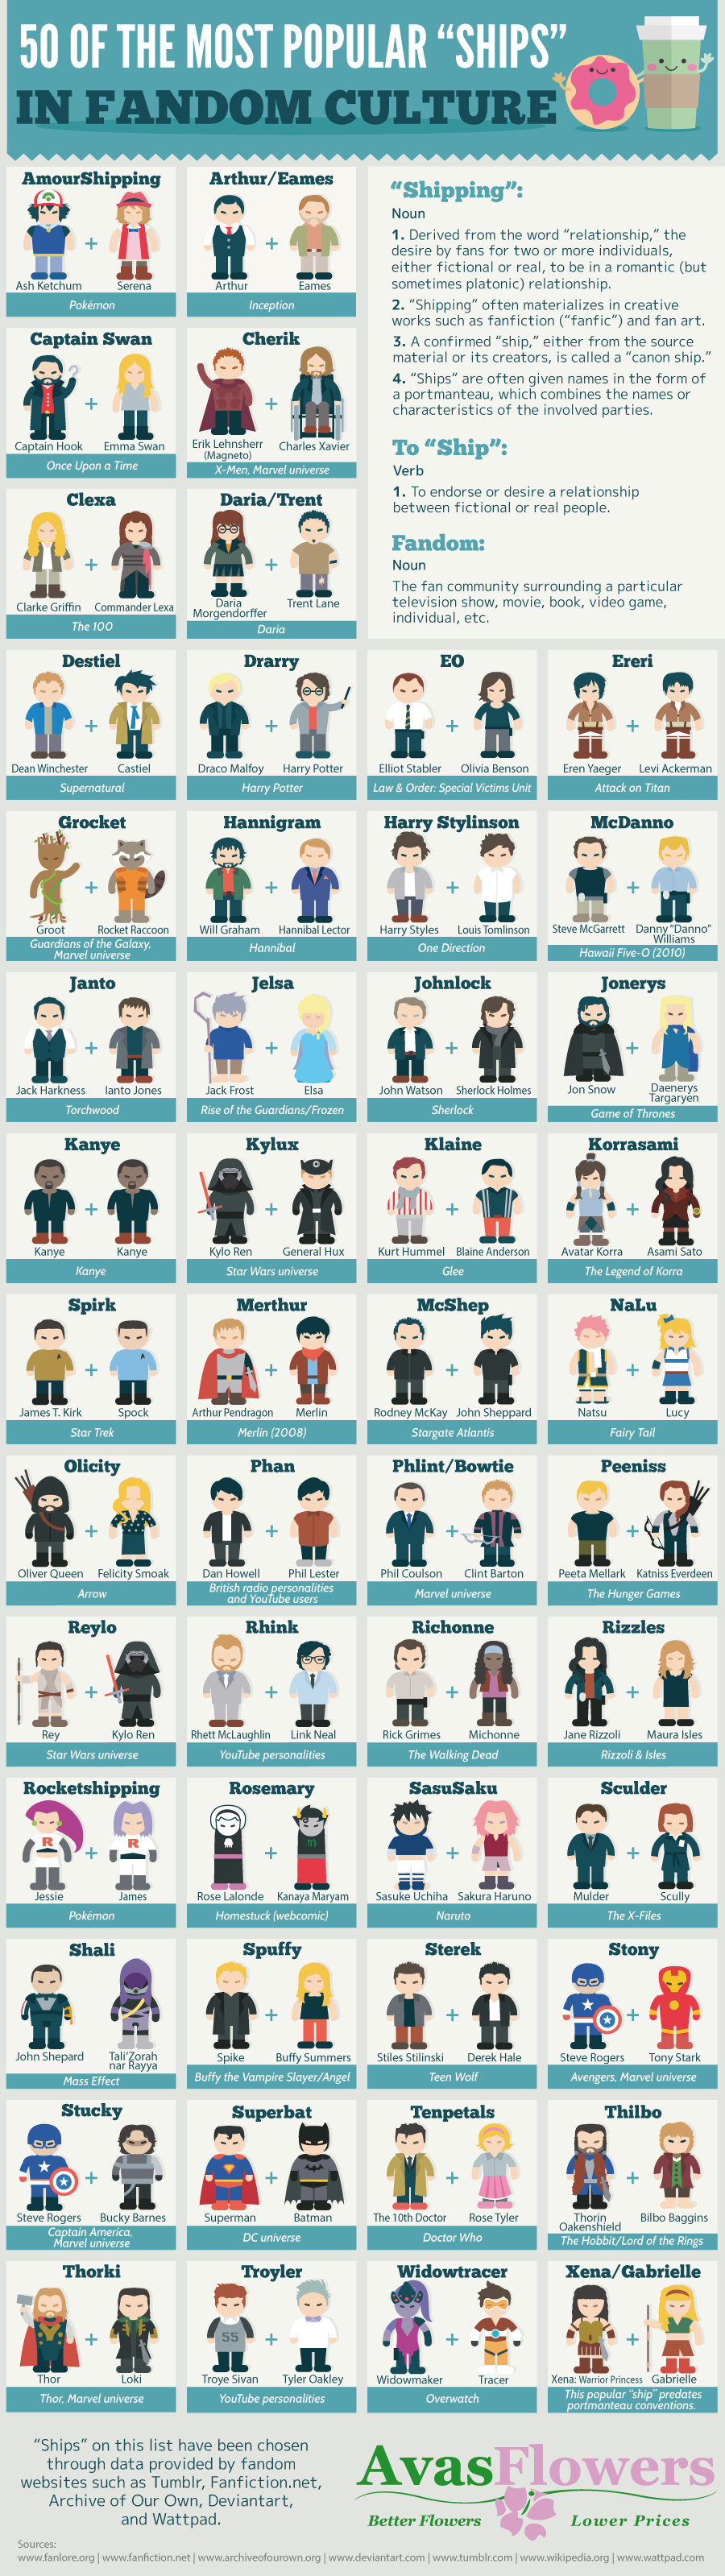 50 of the Most Popular Ships in Fandom Culture #Infographic